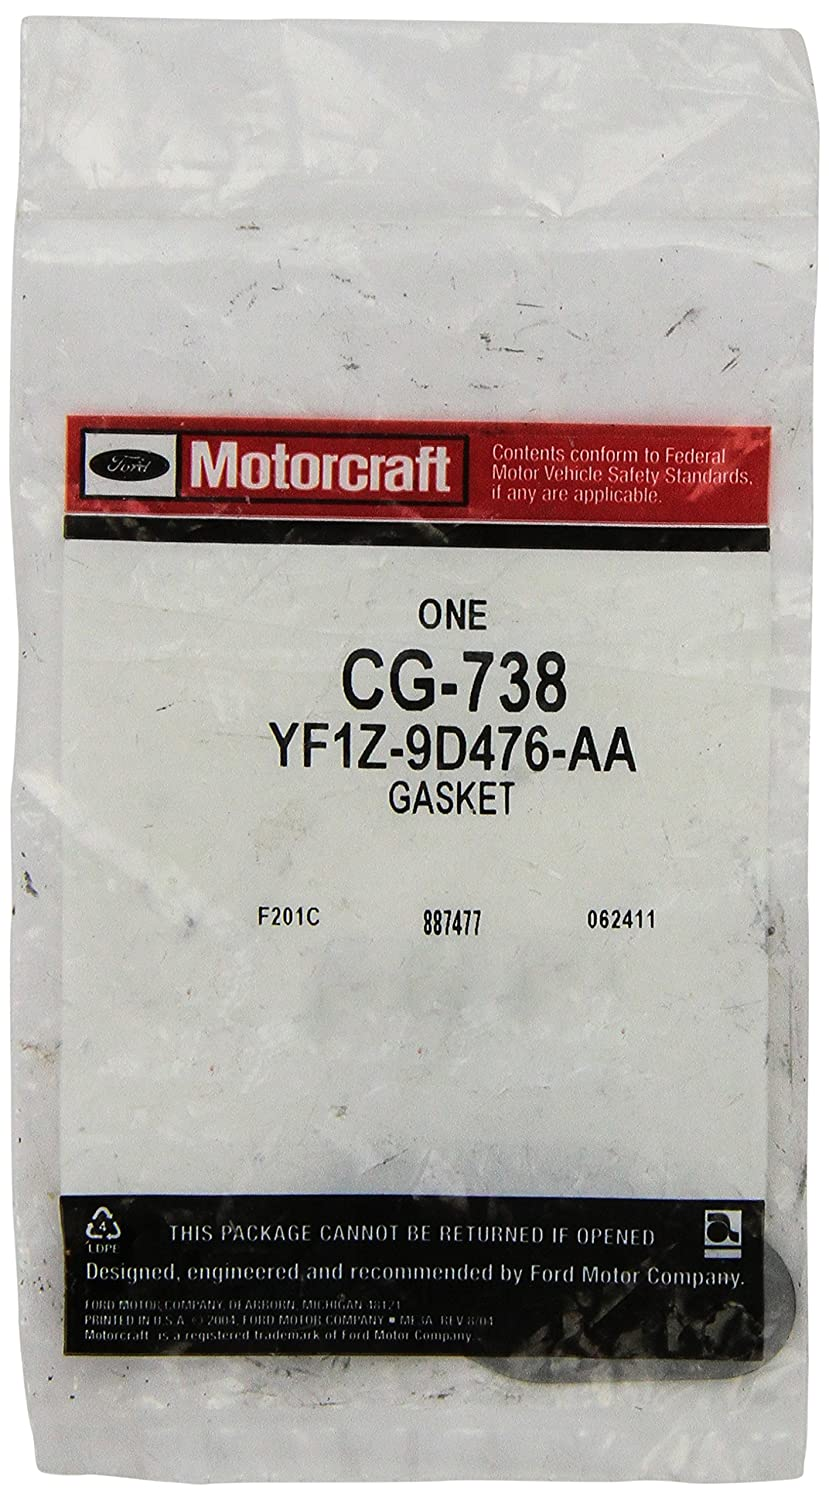 Motorcraft CG738 Exhaust Gas Recirculation Valve Gasket